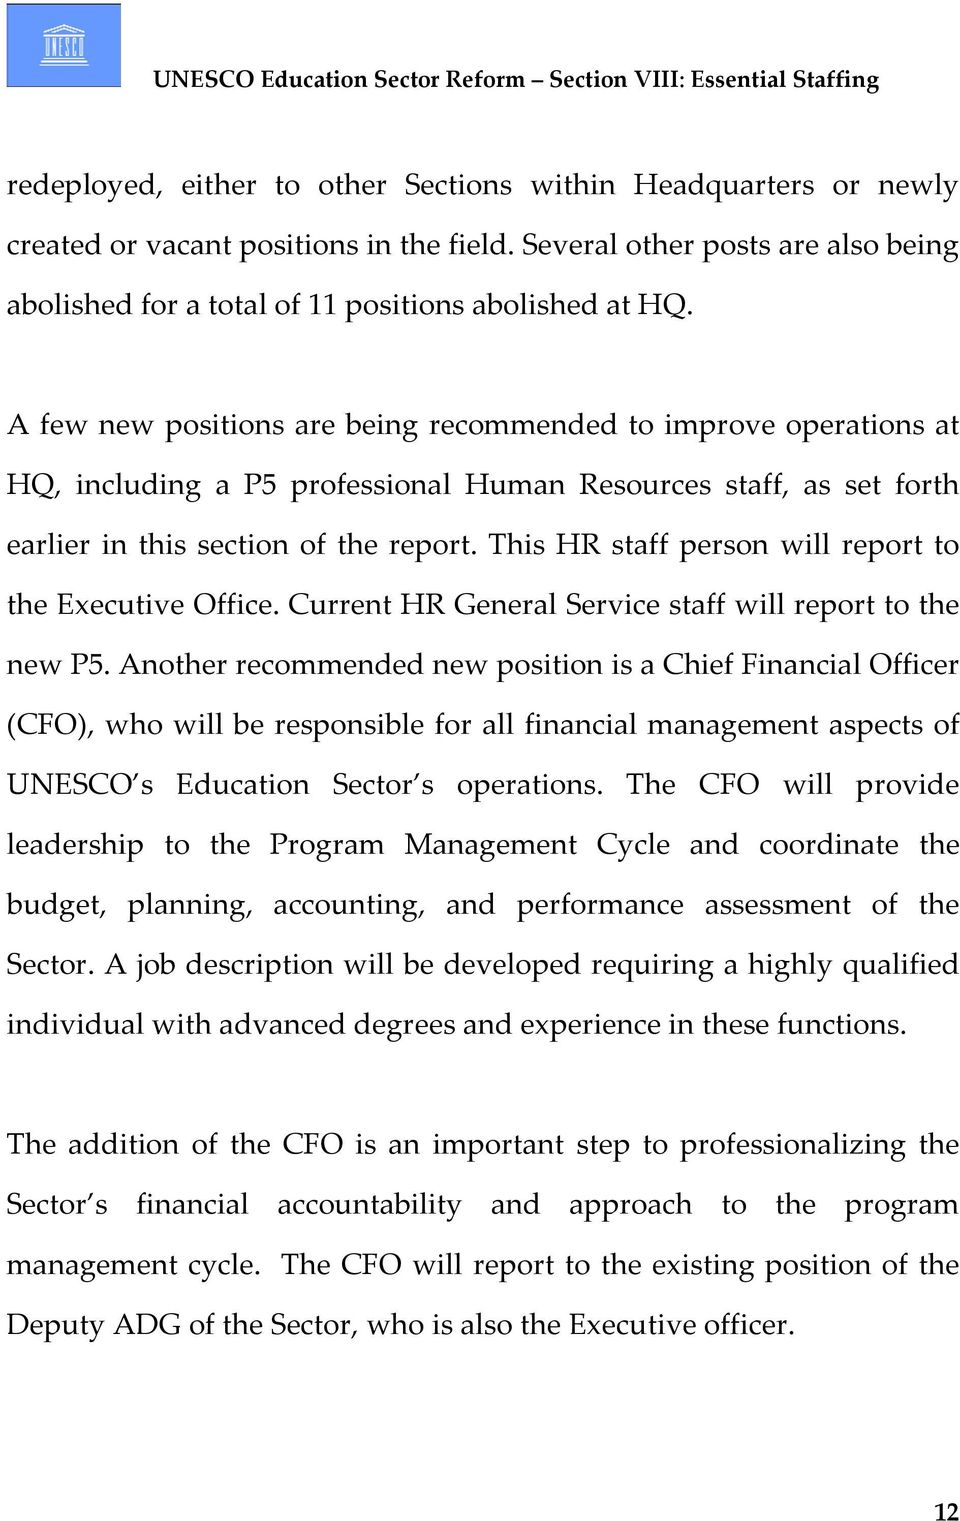 This HR staff person will report to the Executive Office. Current HR General Service staff will report to the new P5.